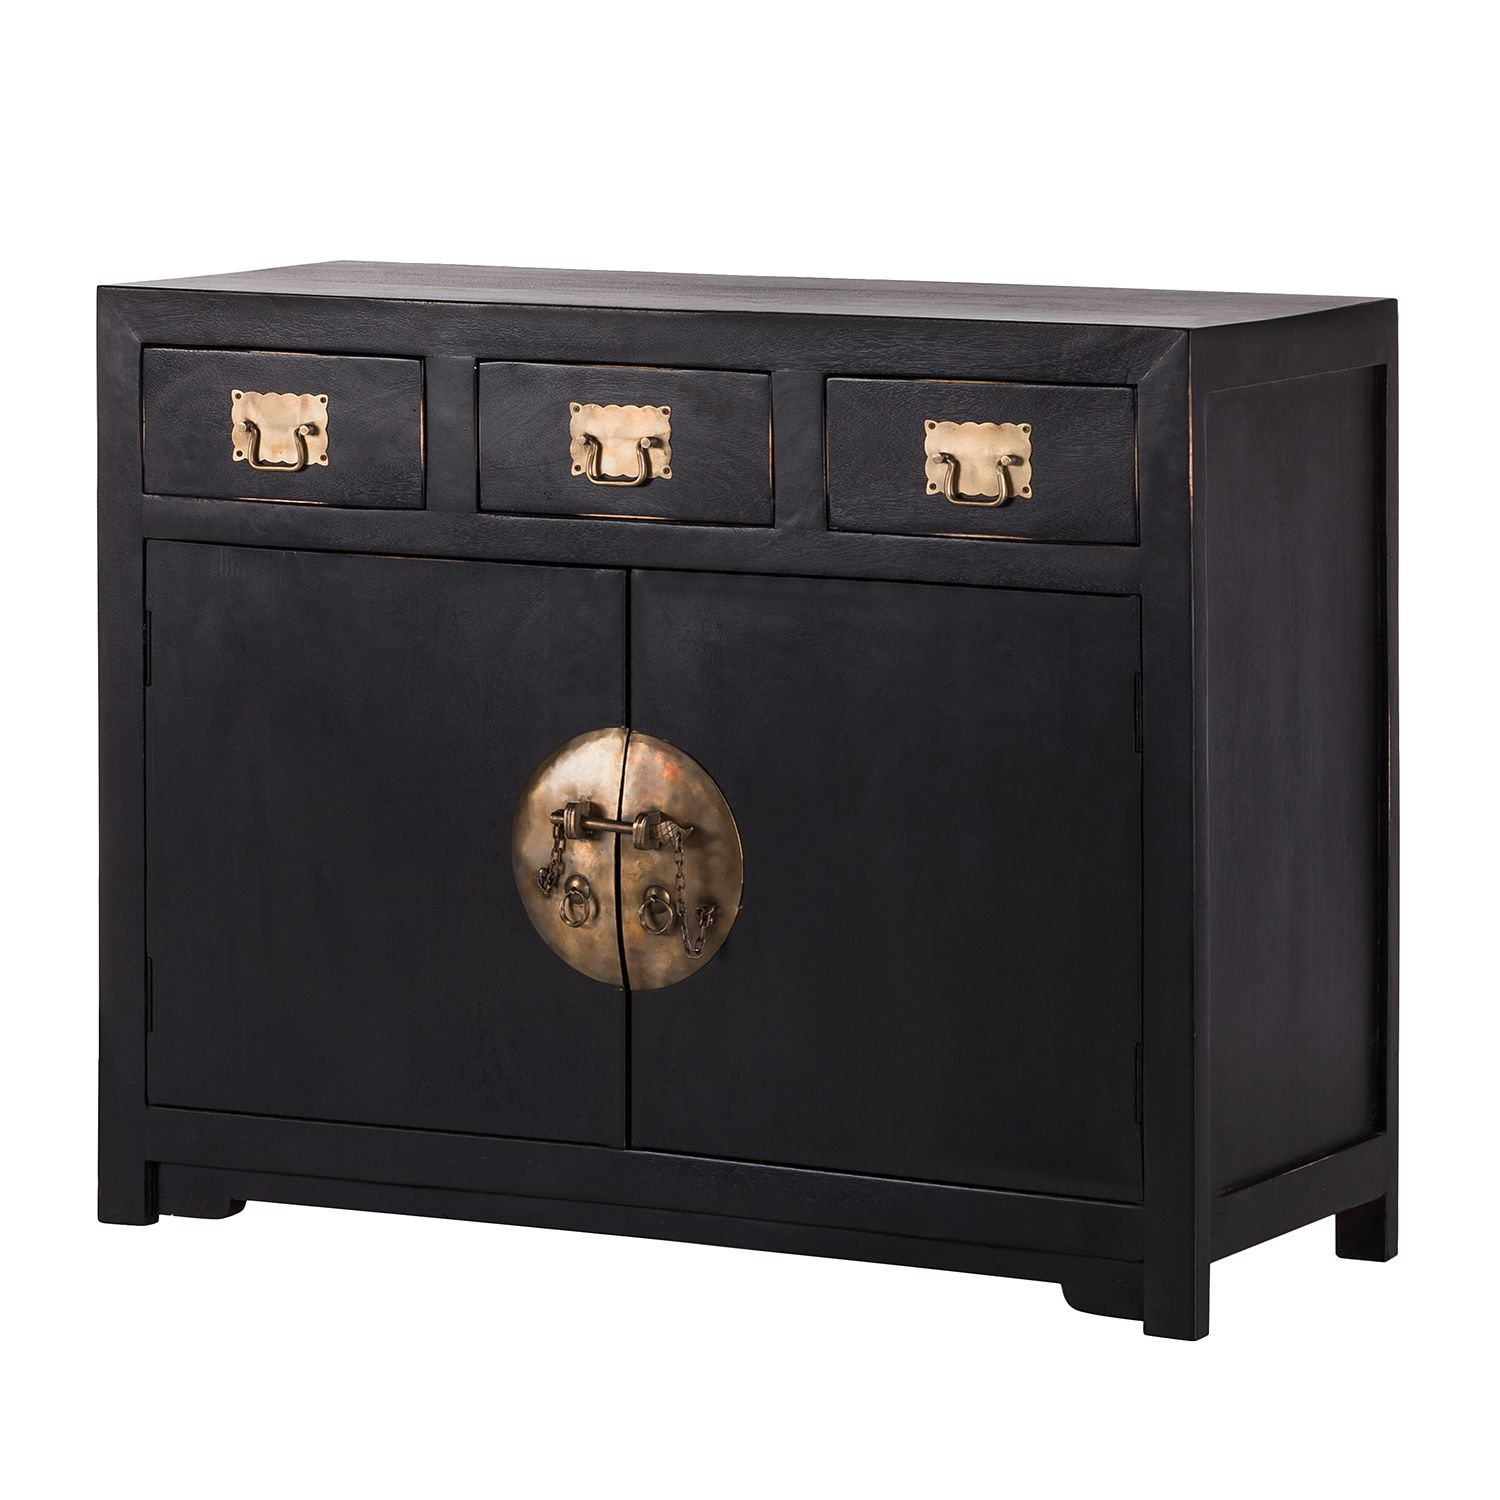 Commode China Town - Manguier partiellement massif - Noir, Red Living